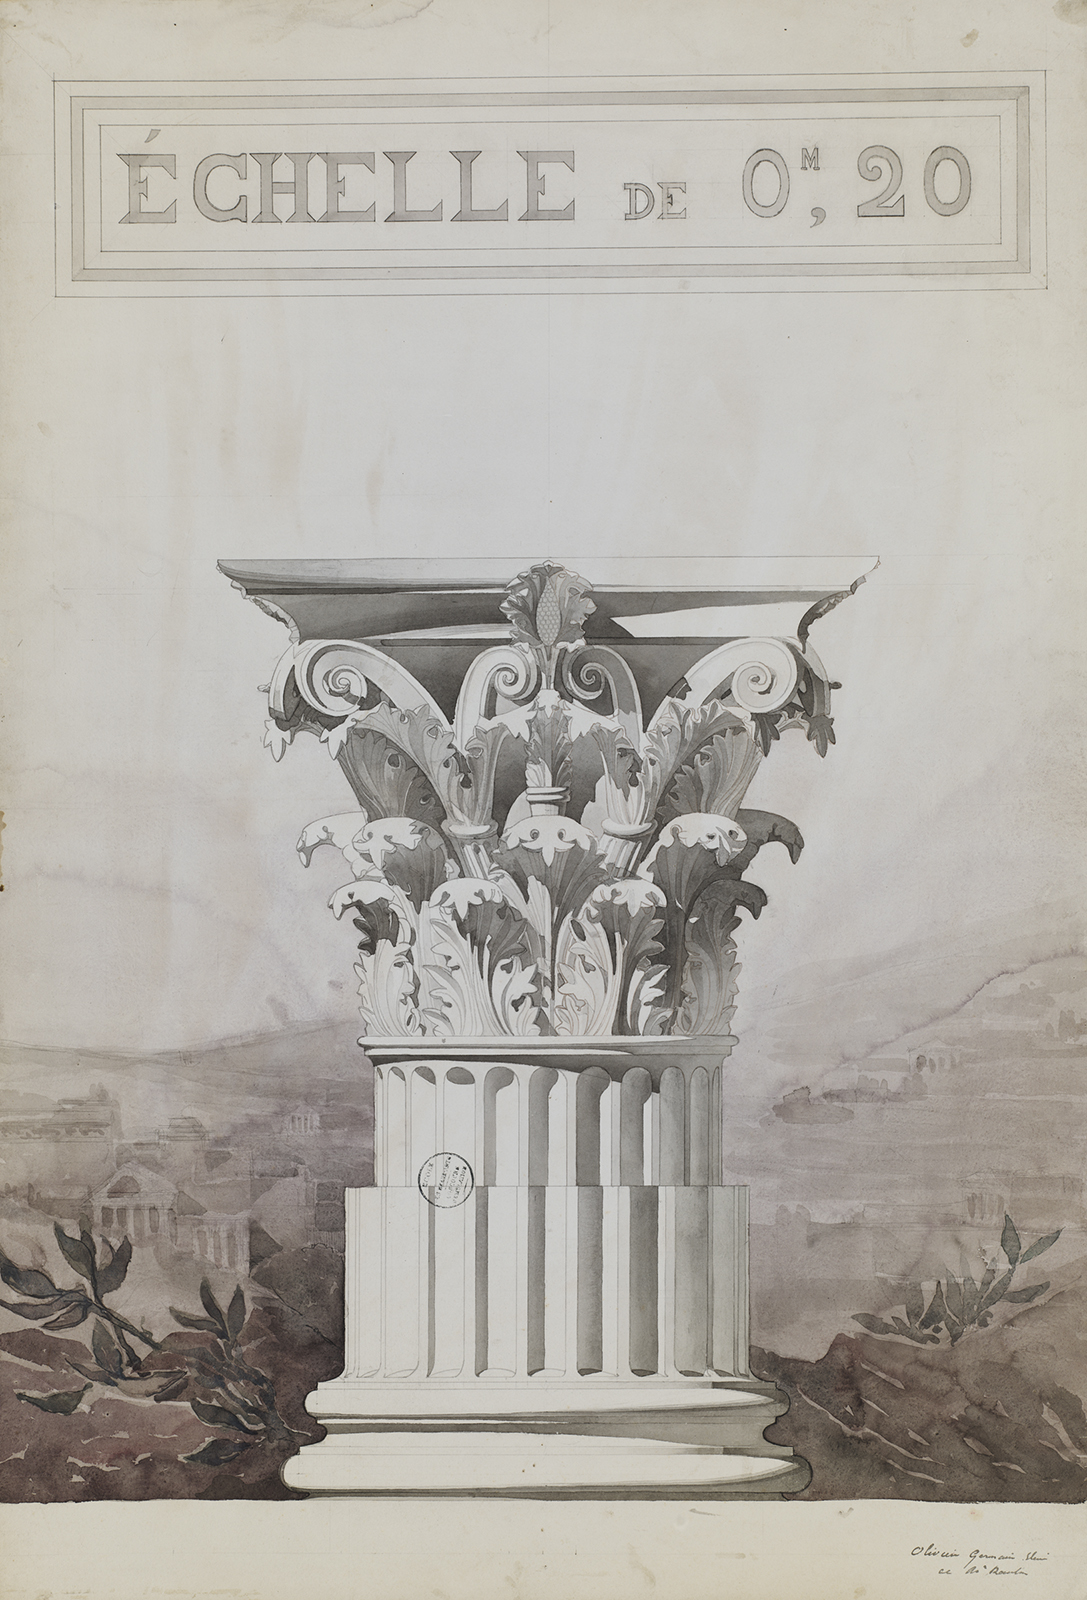 """Jules-Germain Olivier (French, 1869-1940),  Study of a Corinthian Column Capital,  c. 1890, pencil and watercolor on paper, 43 3/4 x 31 7/8"""" framed"""